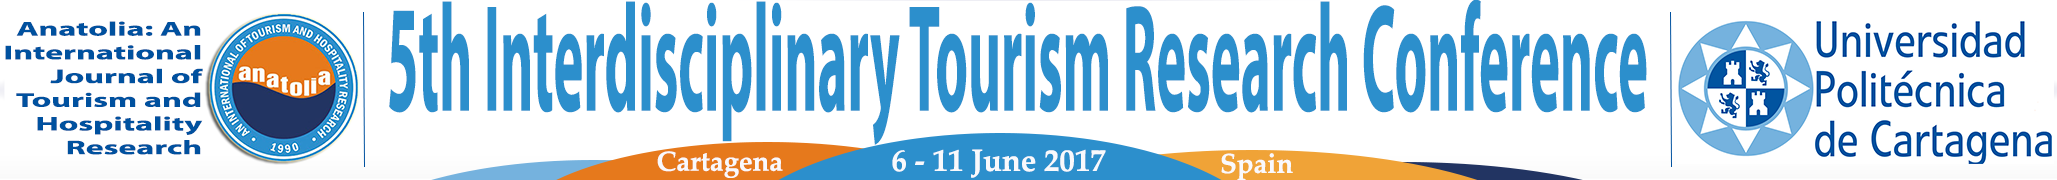 5th Interdisciplinary Tourism Research Conference